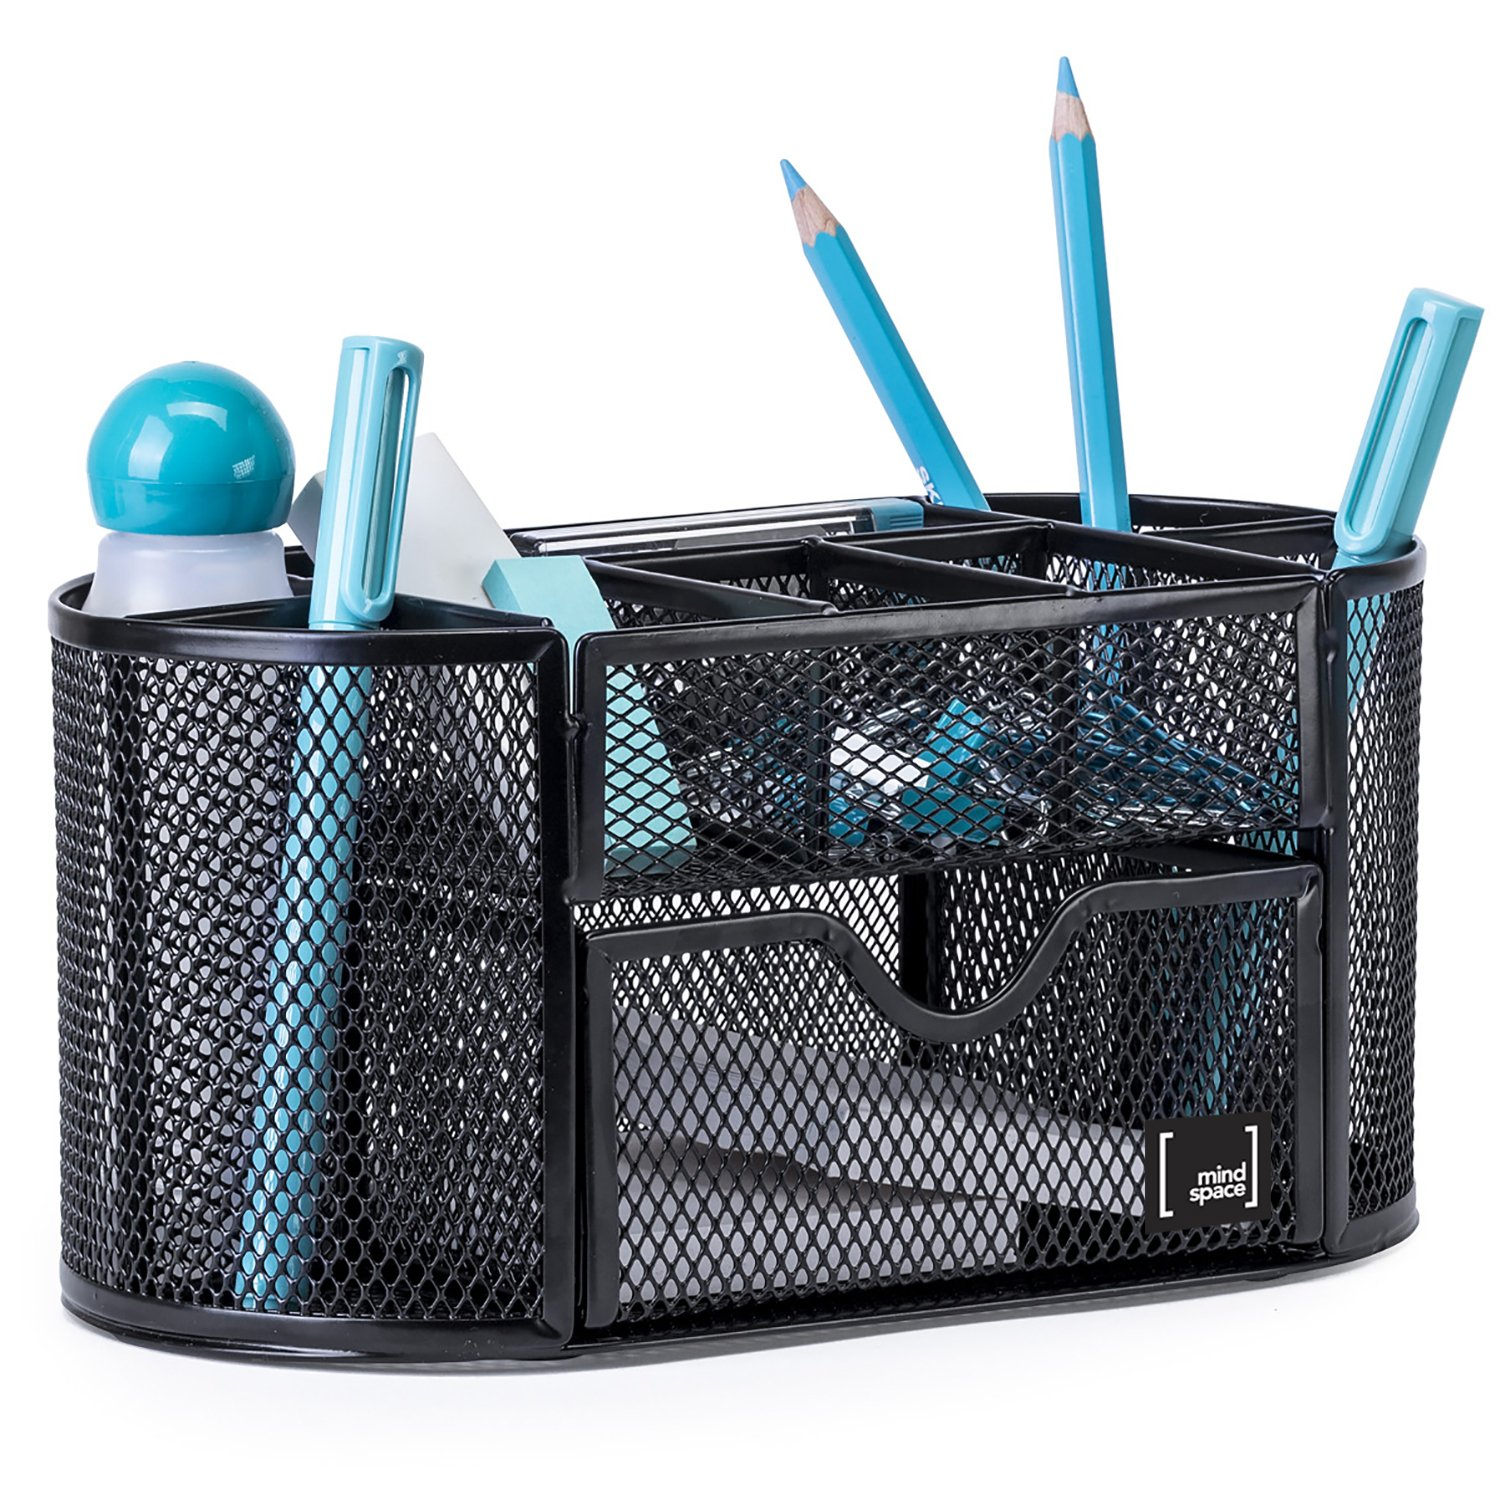 Pen Holder for Desk By Mindsapce with 8 Compartments + Drawer | The Mesh Collection, Black